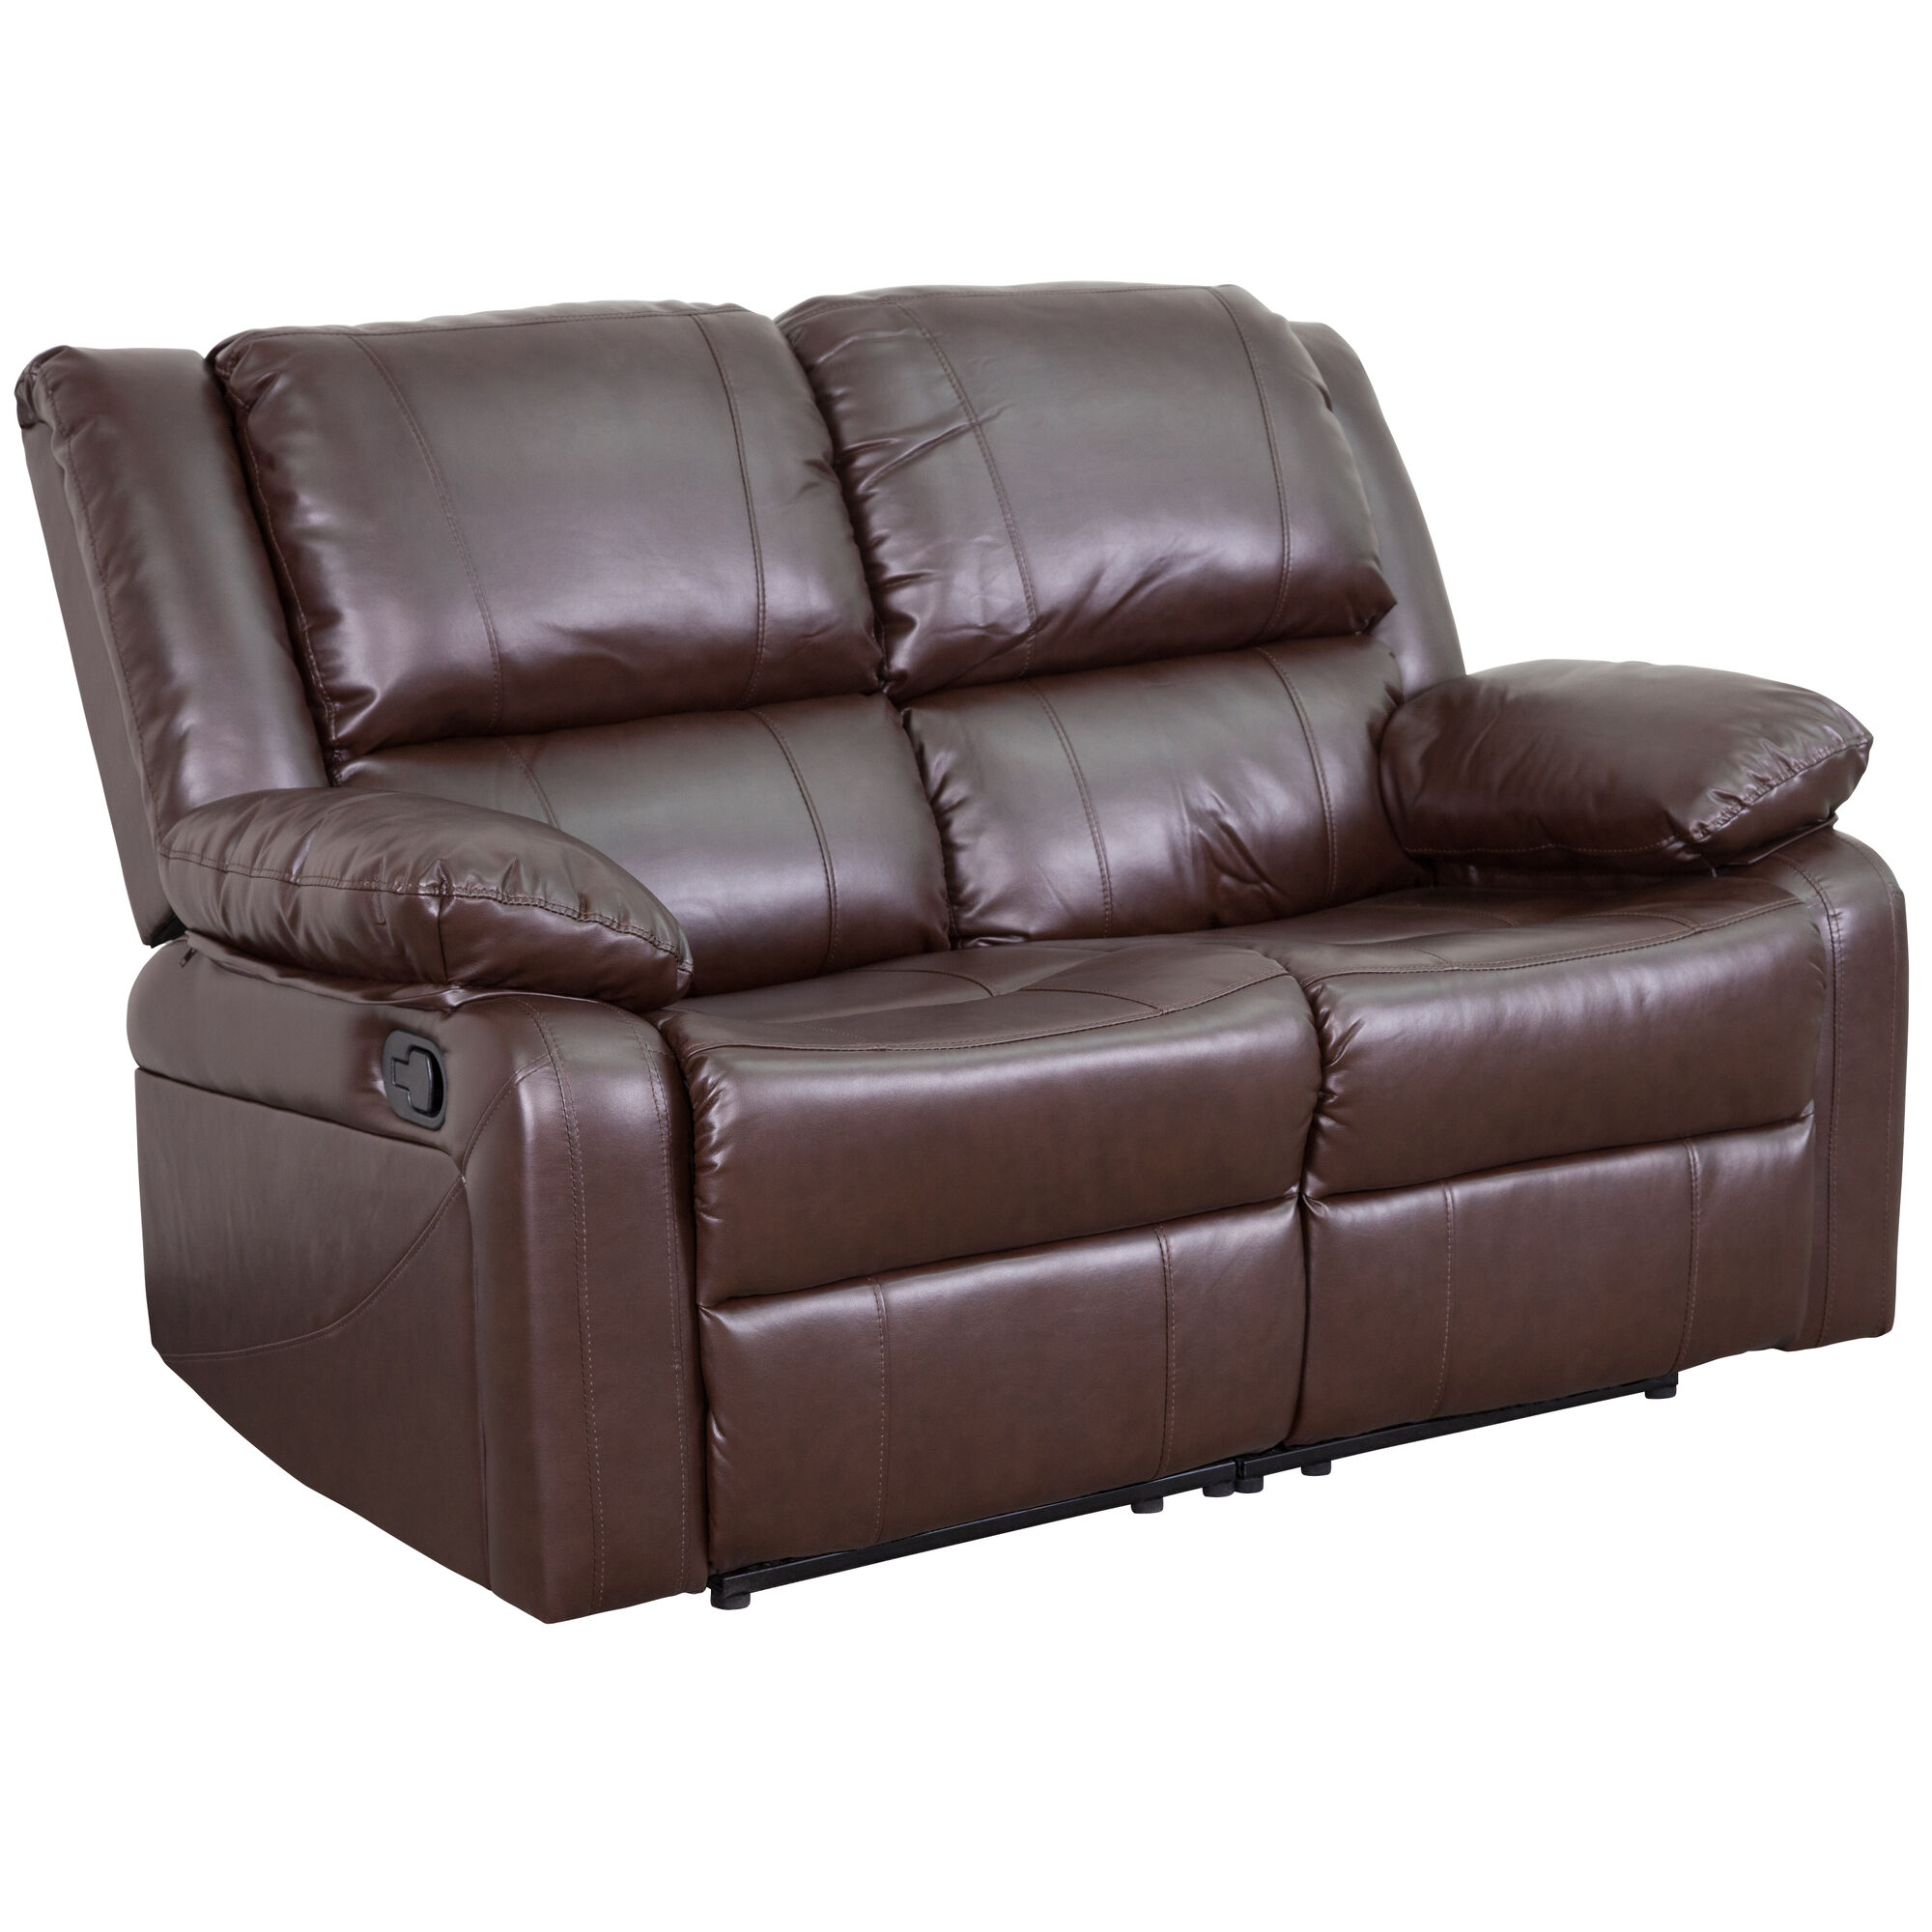 Astounding Harmony Series Brown Leather Loveseat With Two Built In Recliners Gmtry Best Dining Table And Chair Ideas Images Gmtryco